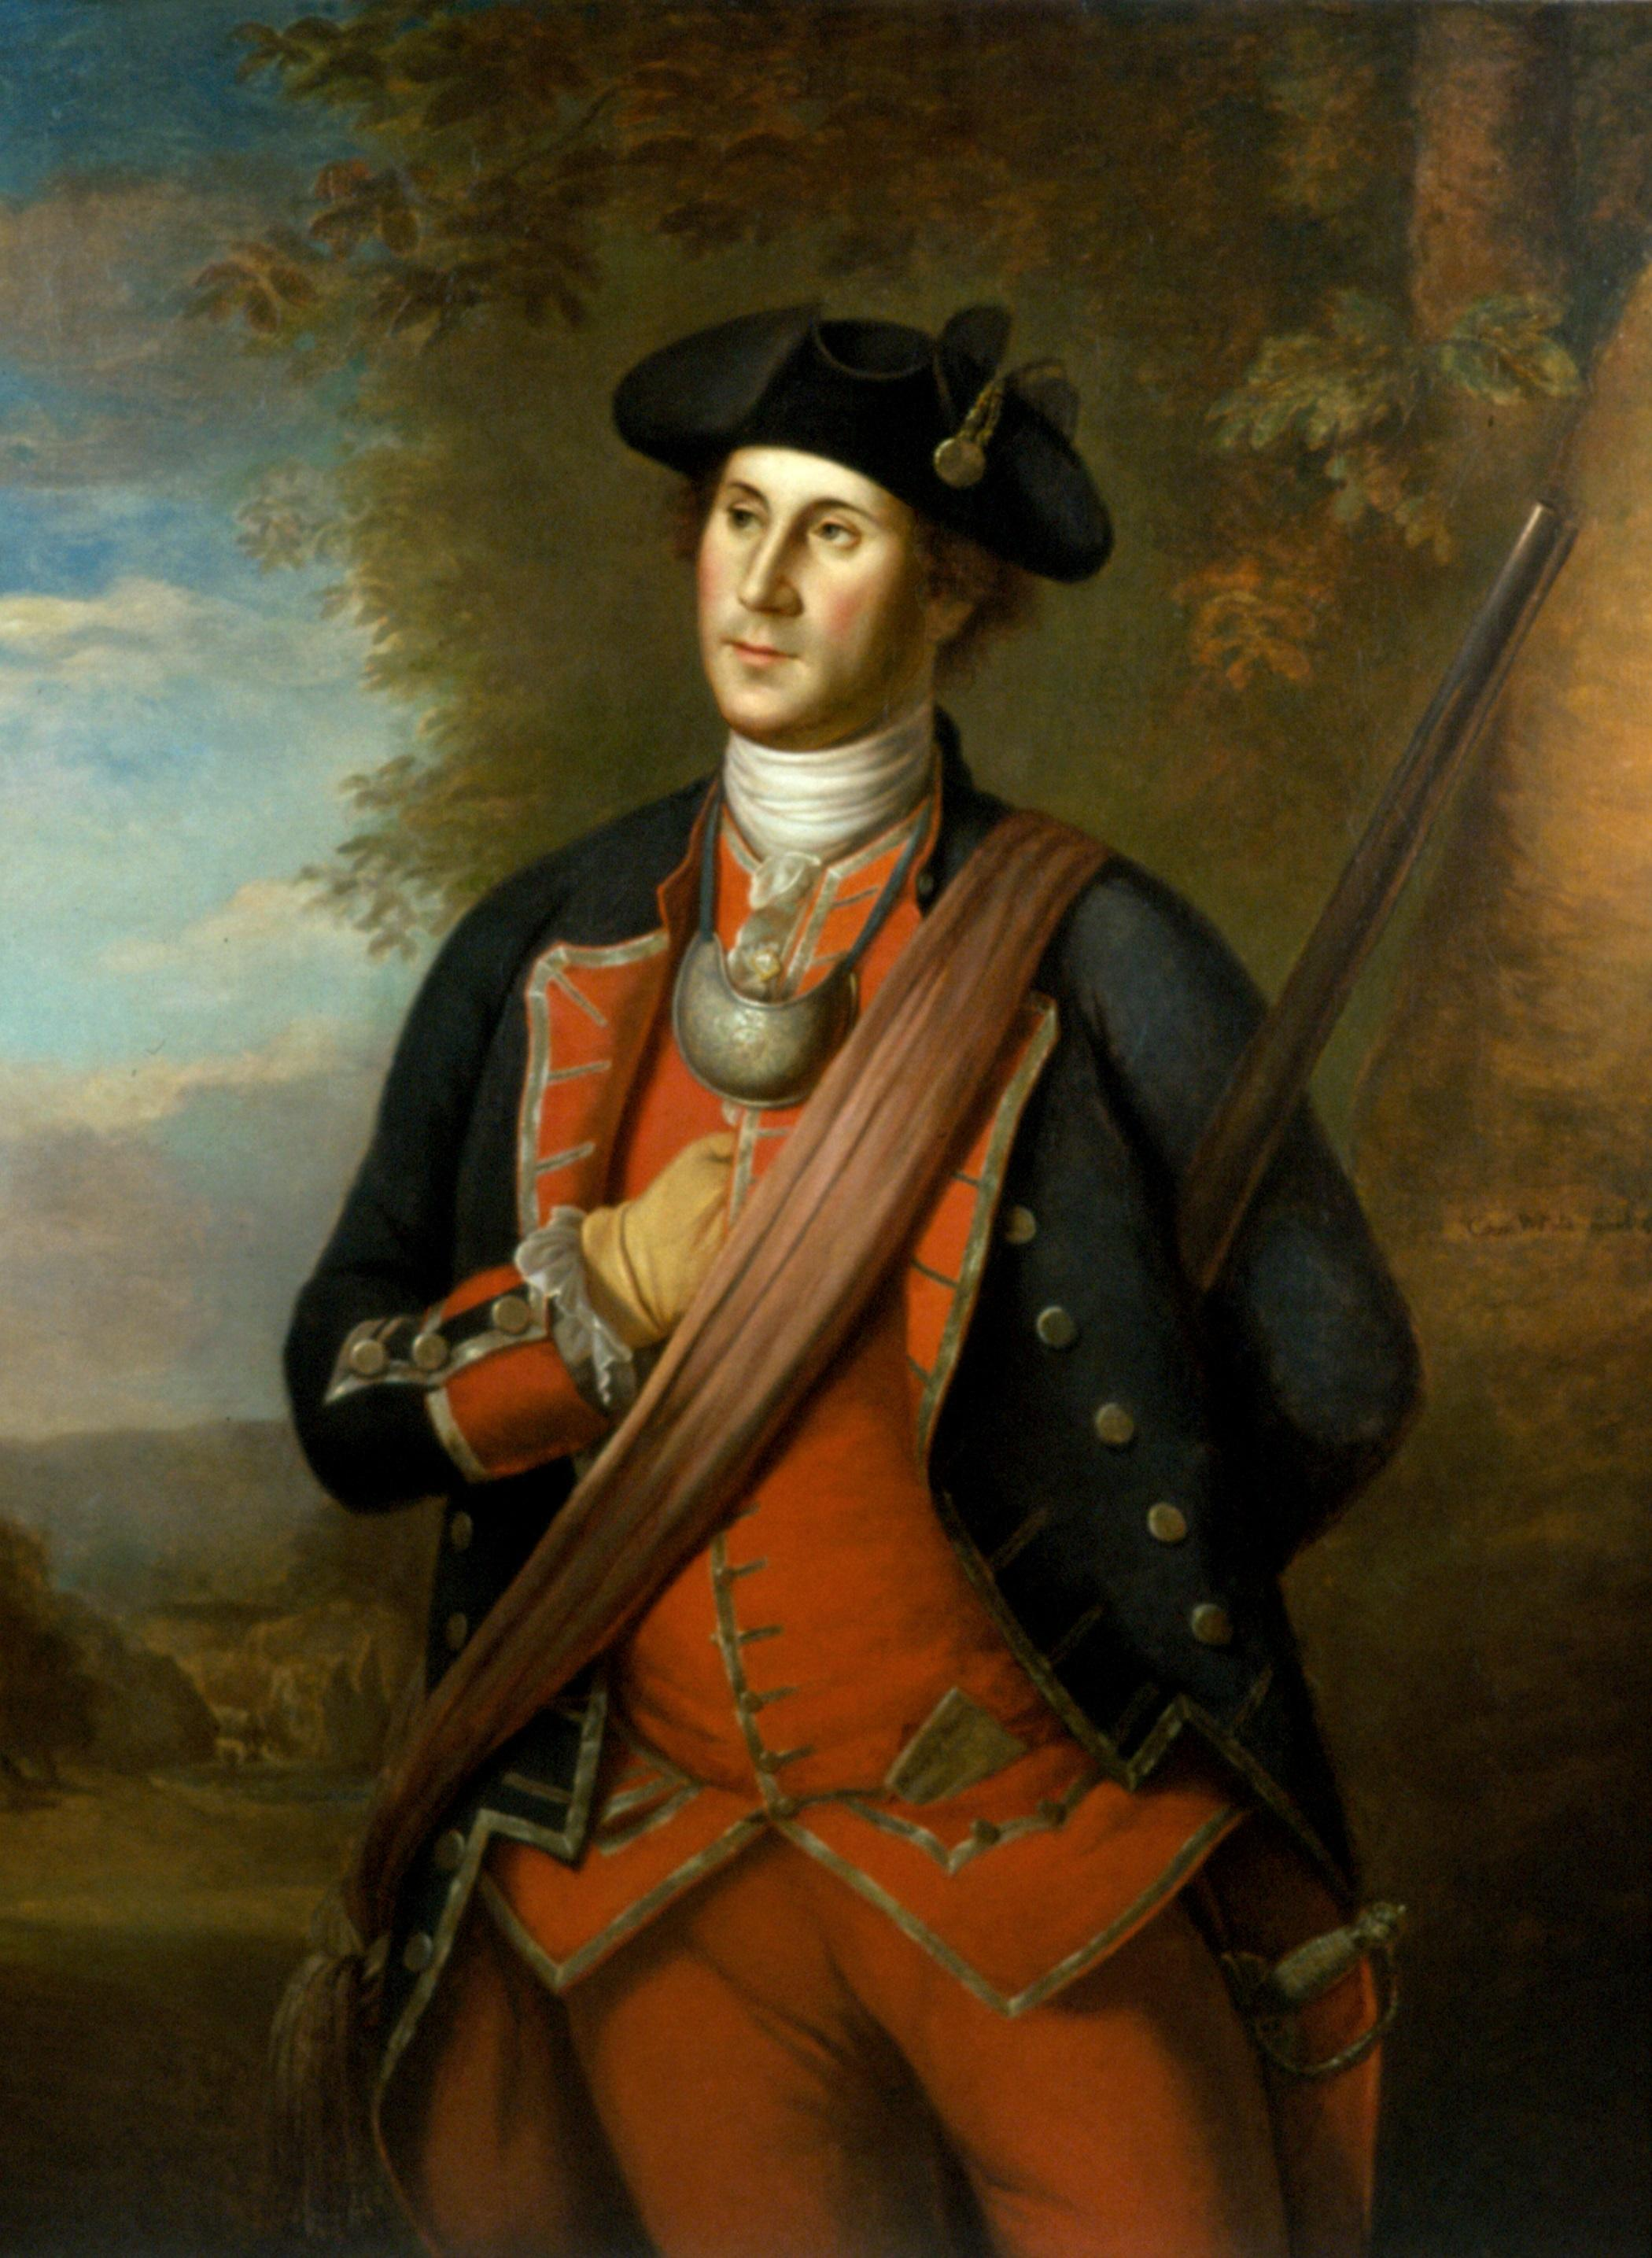 George Washington during the French and Indian War, as painted by Charles Willson Peale in 1772.